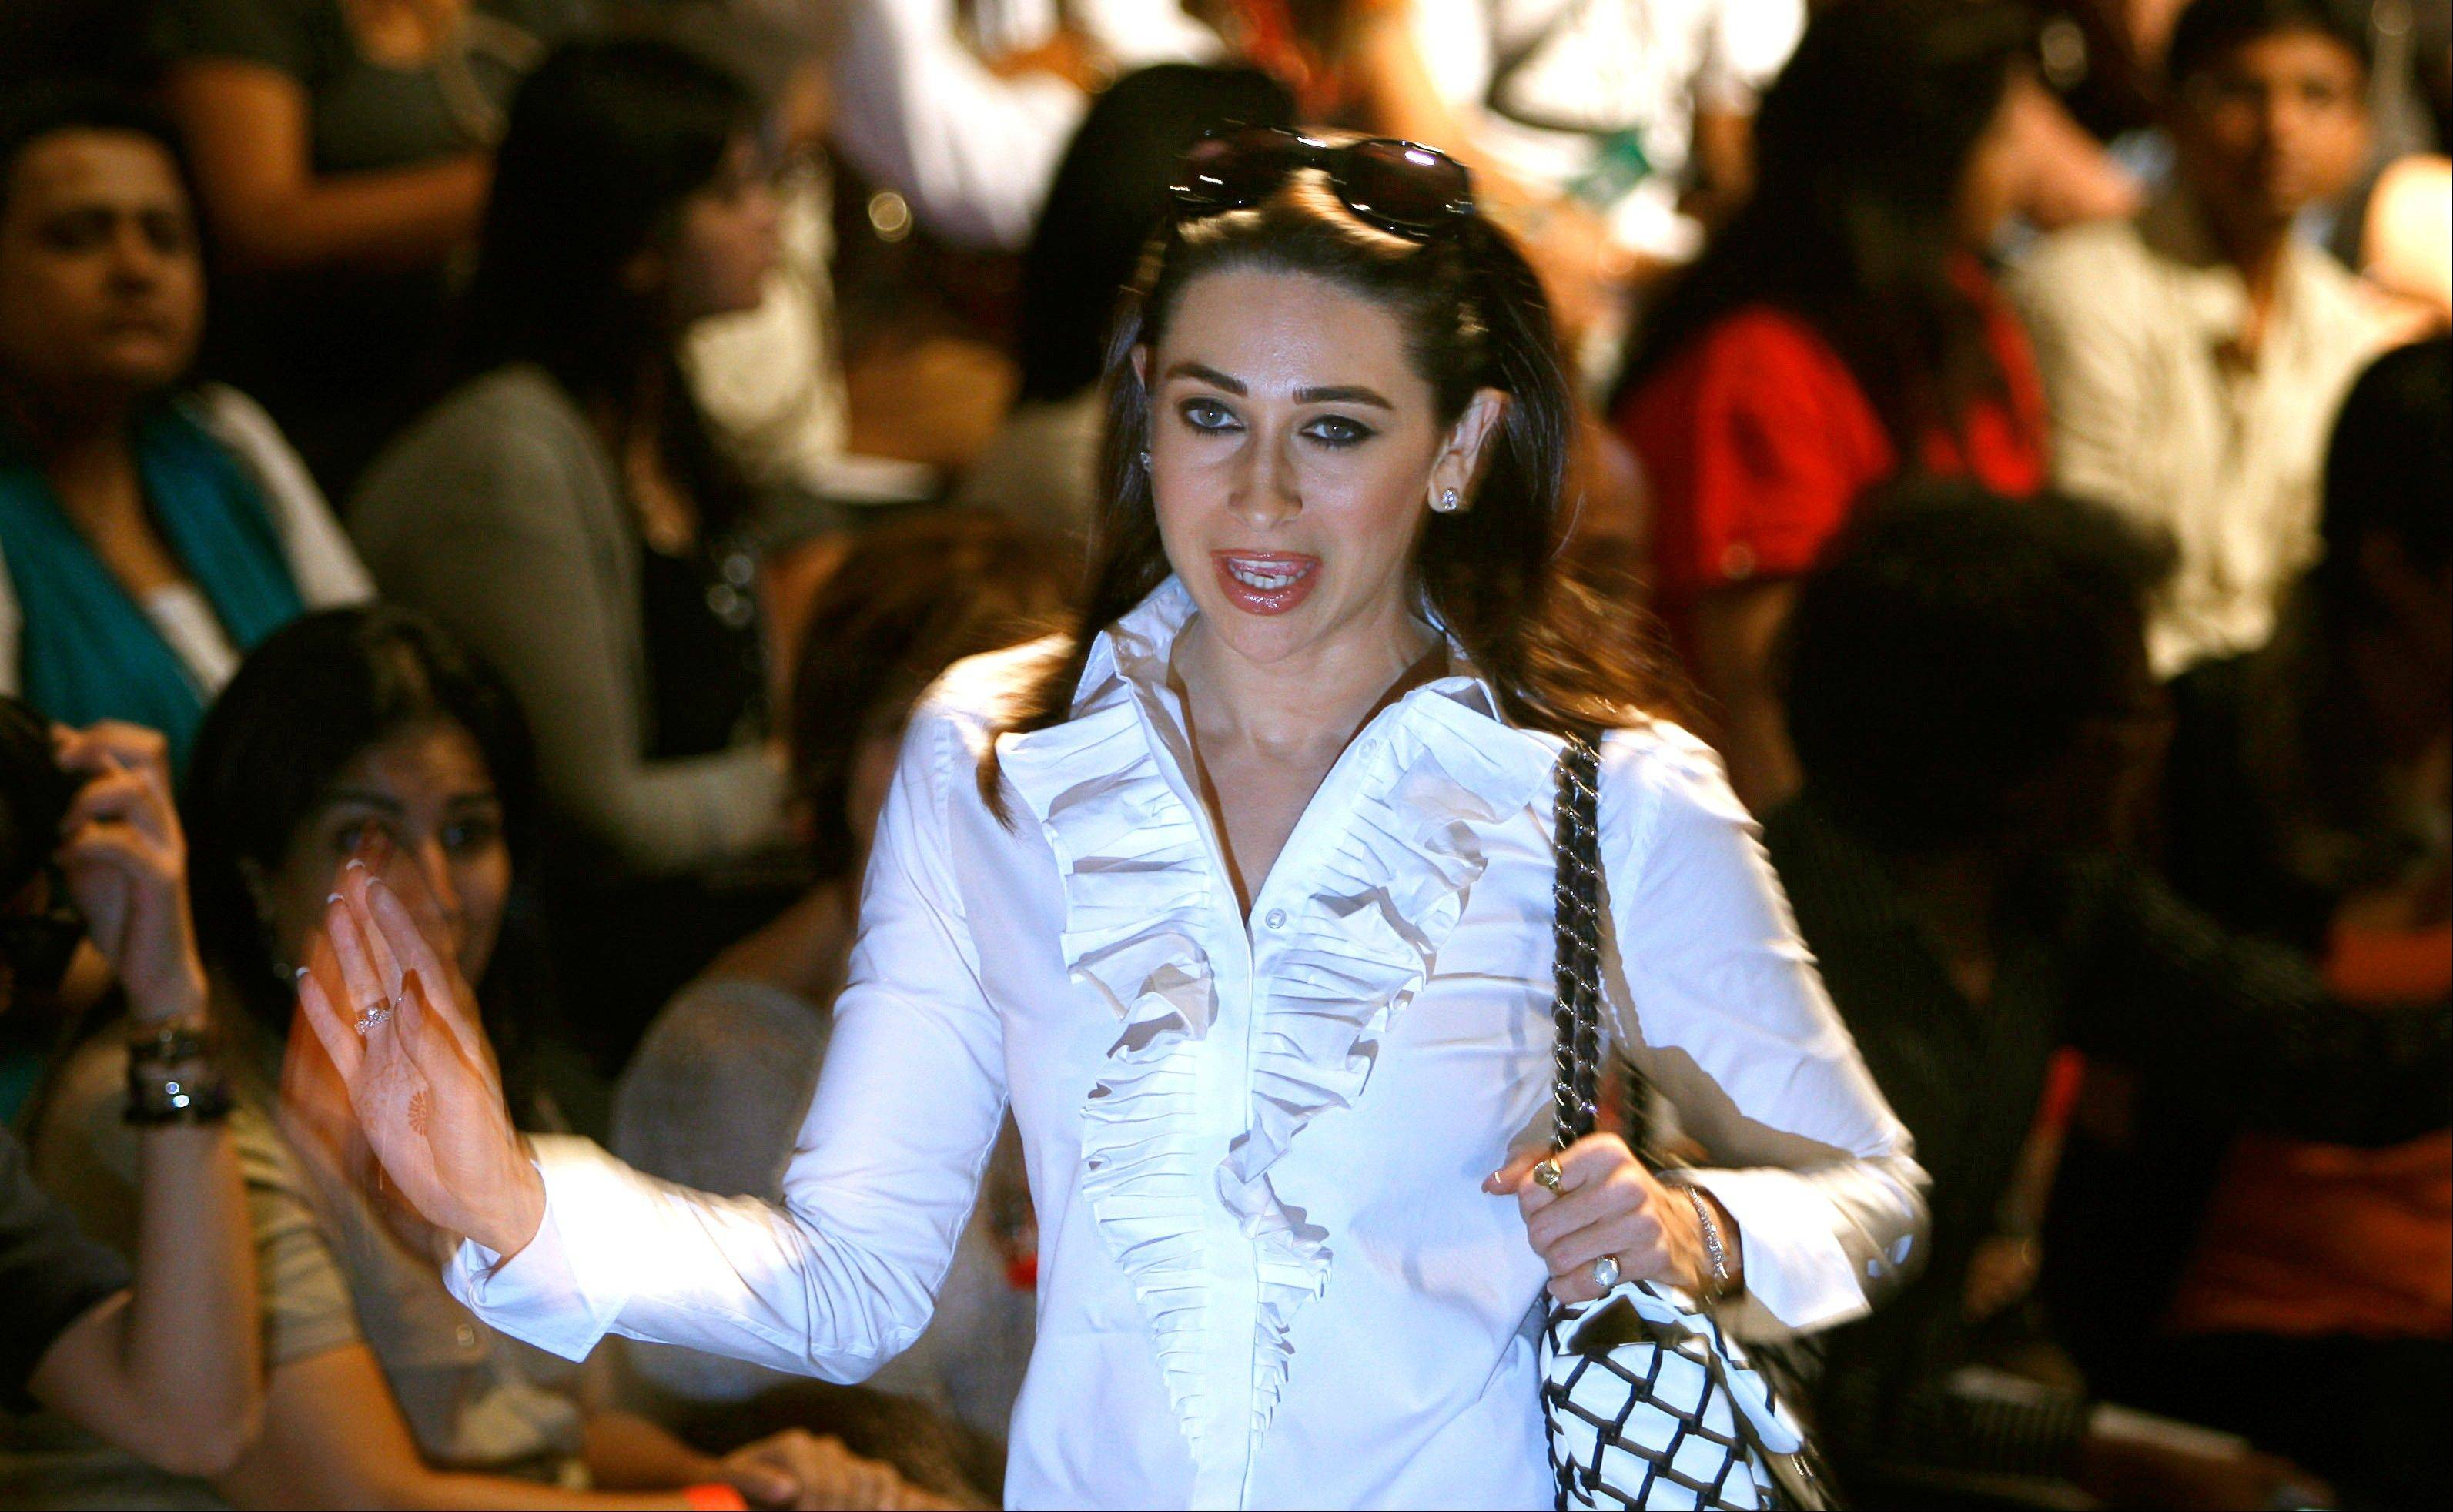 Bollywood actress Karisma Kapoor waves as she arrives to attend the Lakme Fashion Week in Mumbai, India.